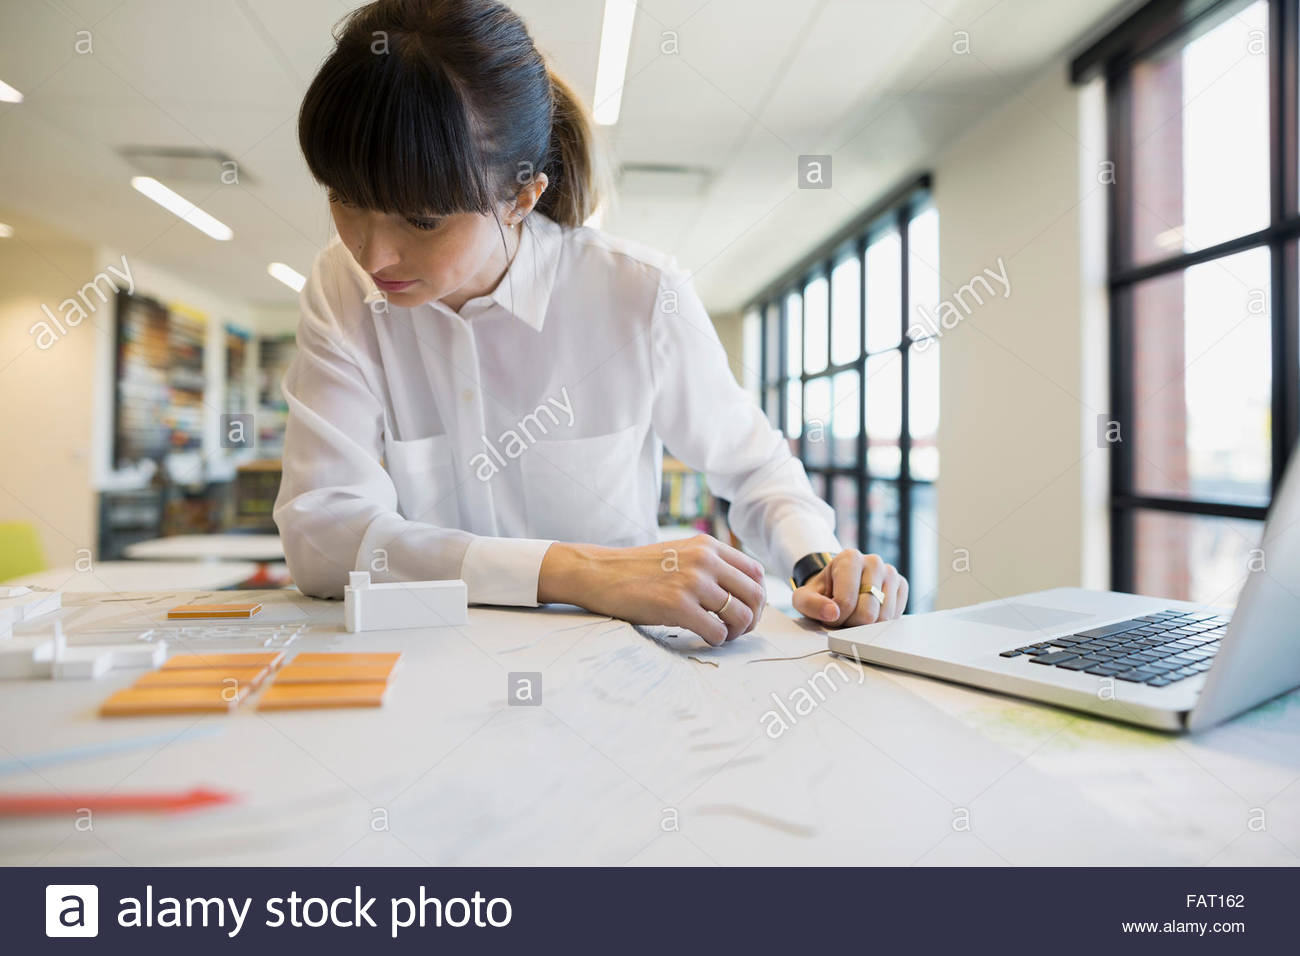 Focused architect examining models in office - Stock Image